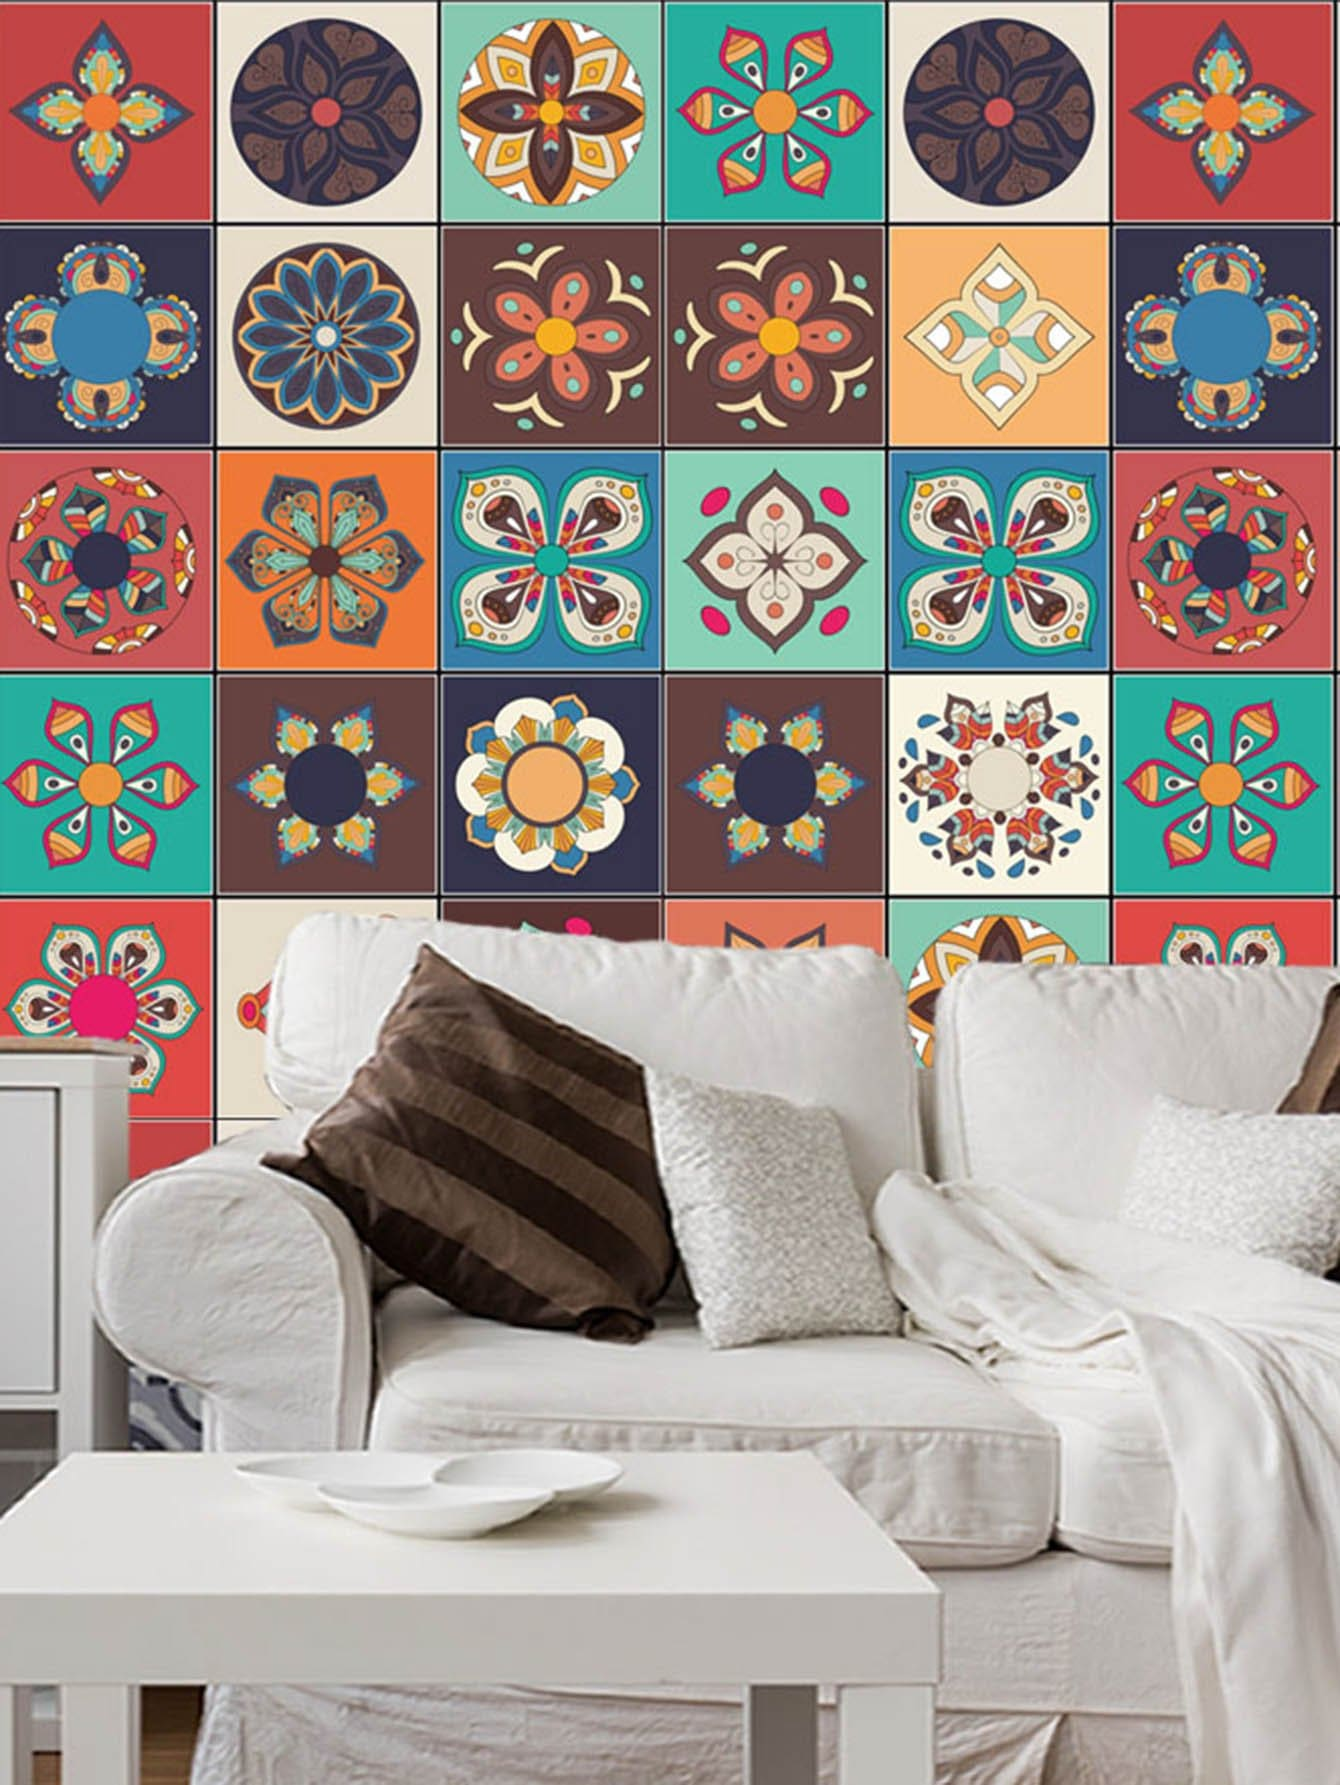 Random Abstract Flower Ceramic Tile Decal 1pc очки лектор